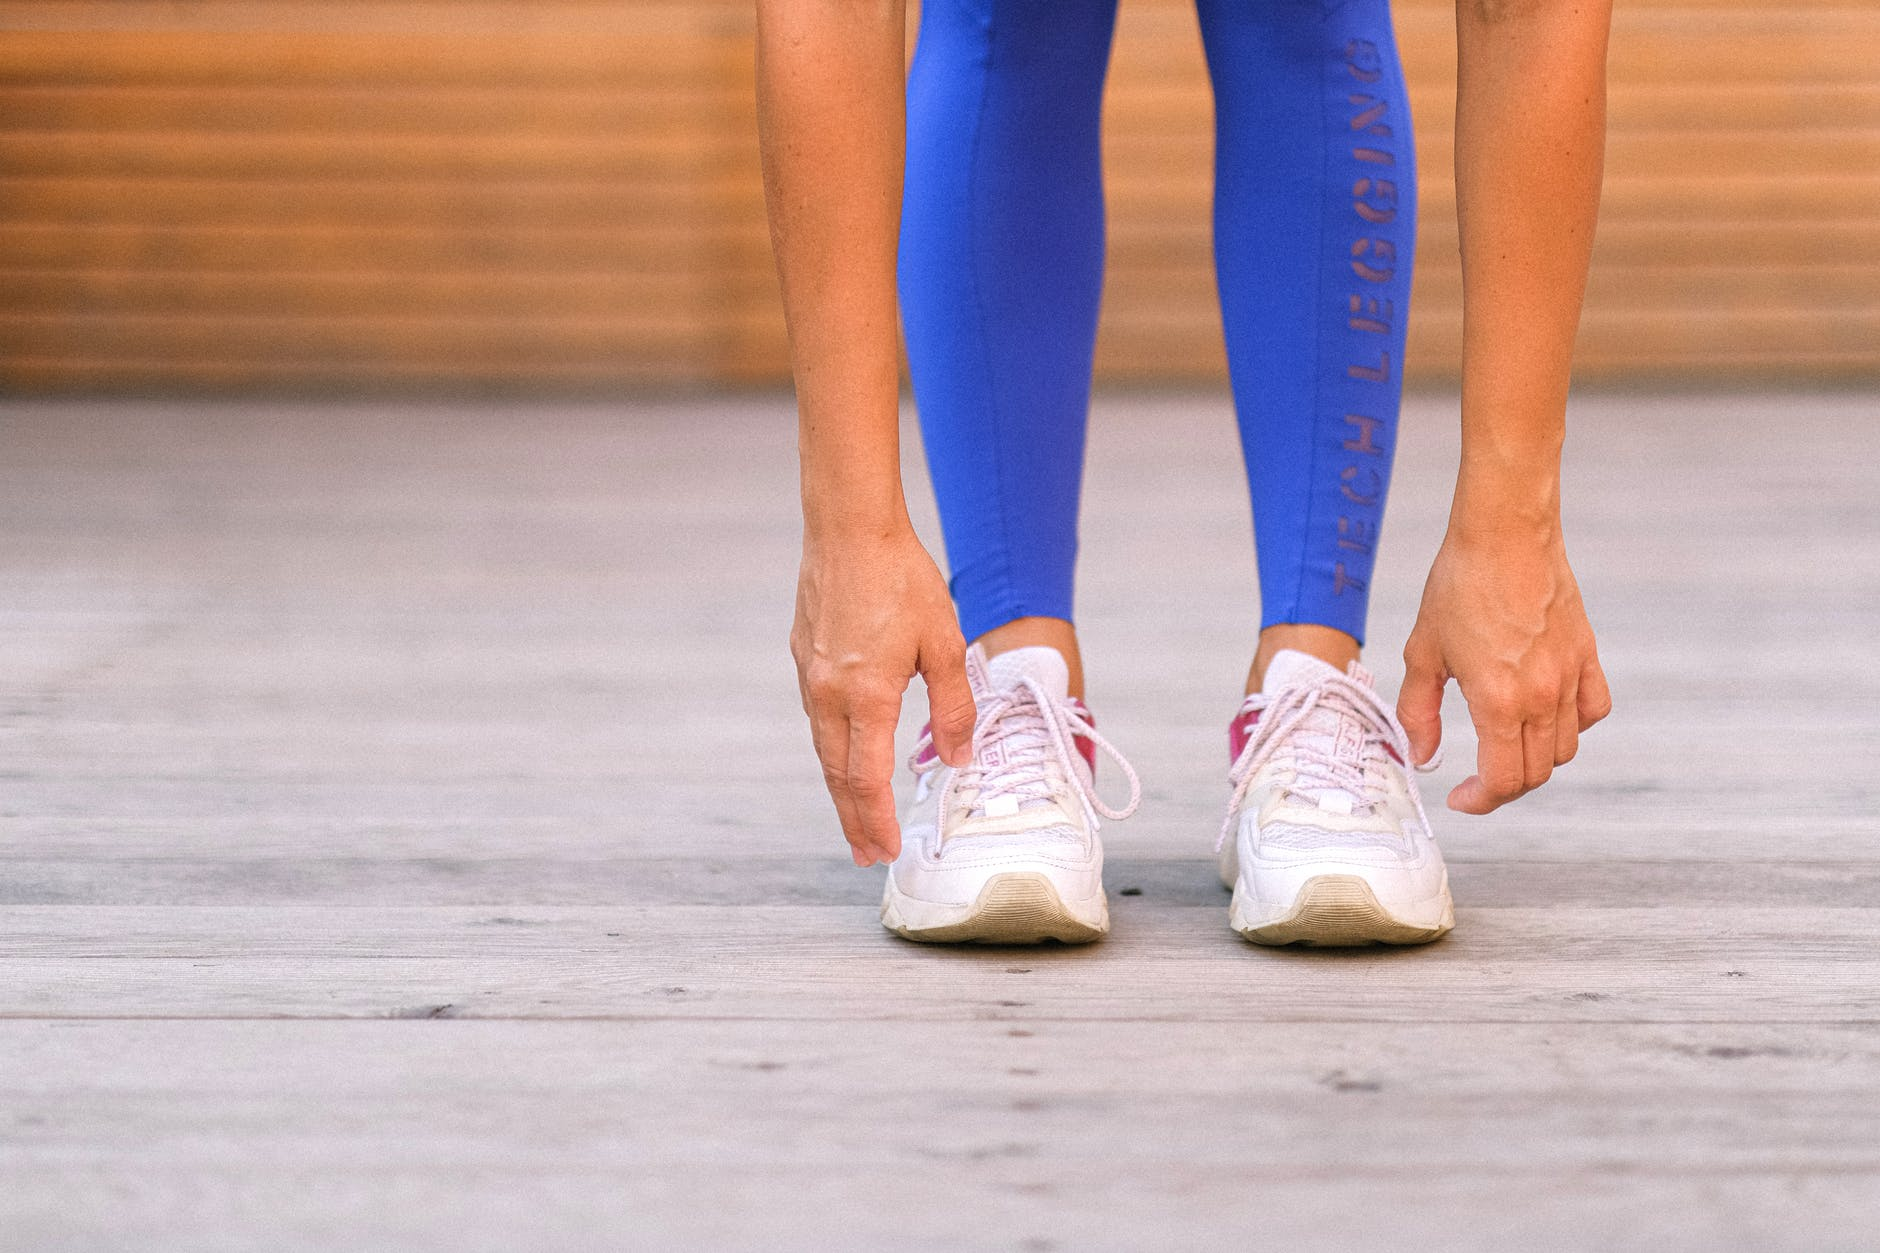 Fast Weight Loss Exercises At Home That Are Effective And Easy - running in place